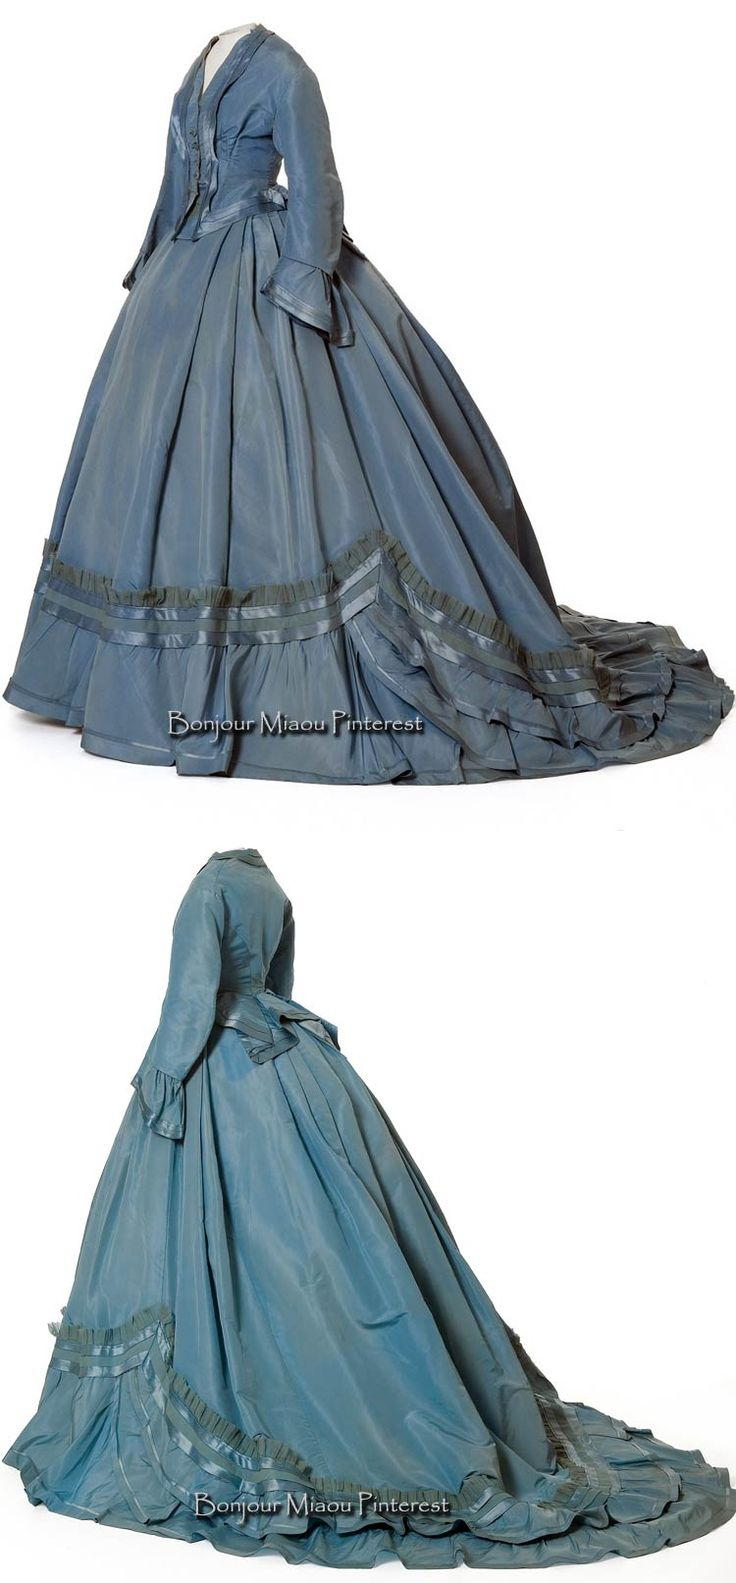 Robe à transformation, Soinard, ca. 1865-68. Blue silk and wool taffeta, satin, and crepe. Photo: Jean Tholance. Les Arts Décoratifs and Europeana Fashion